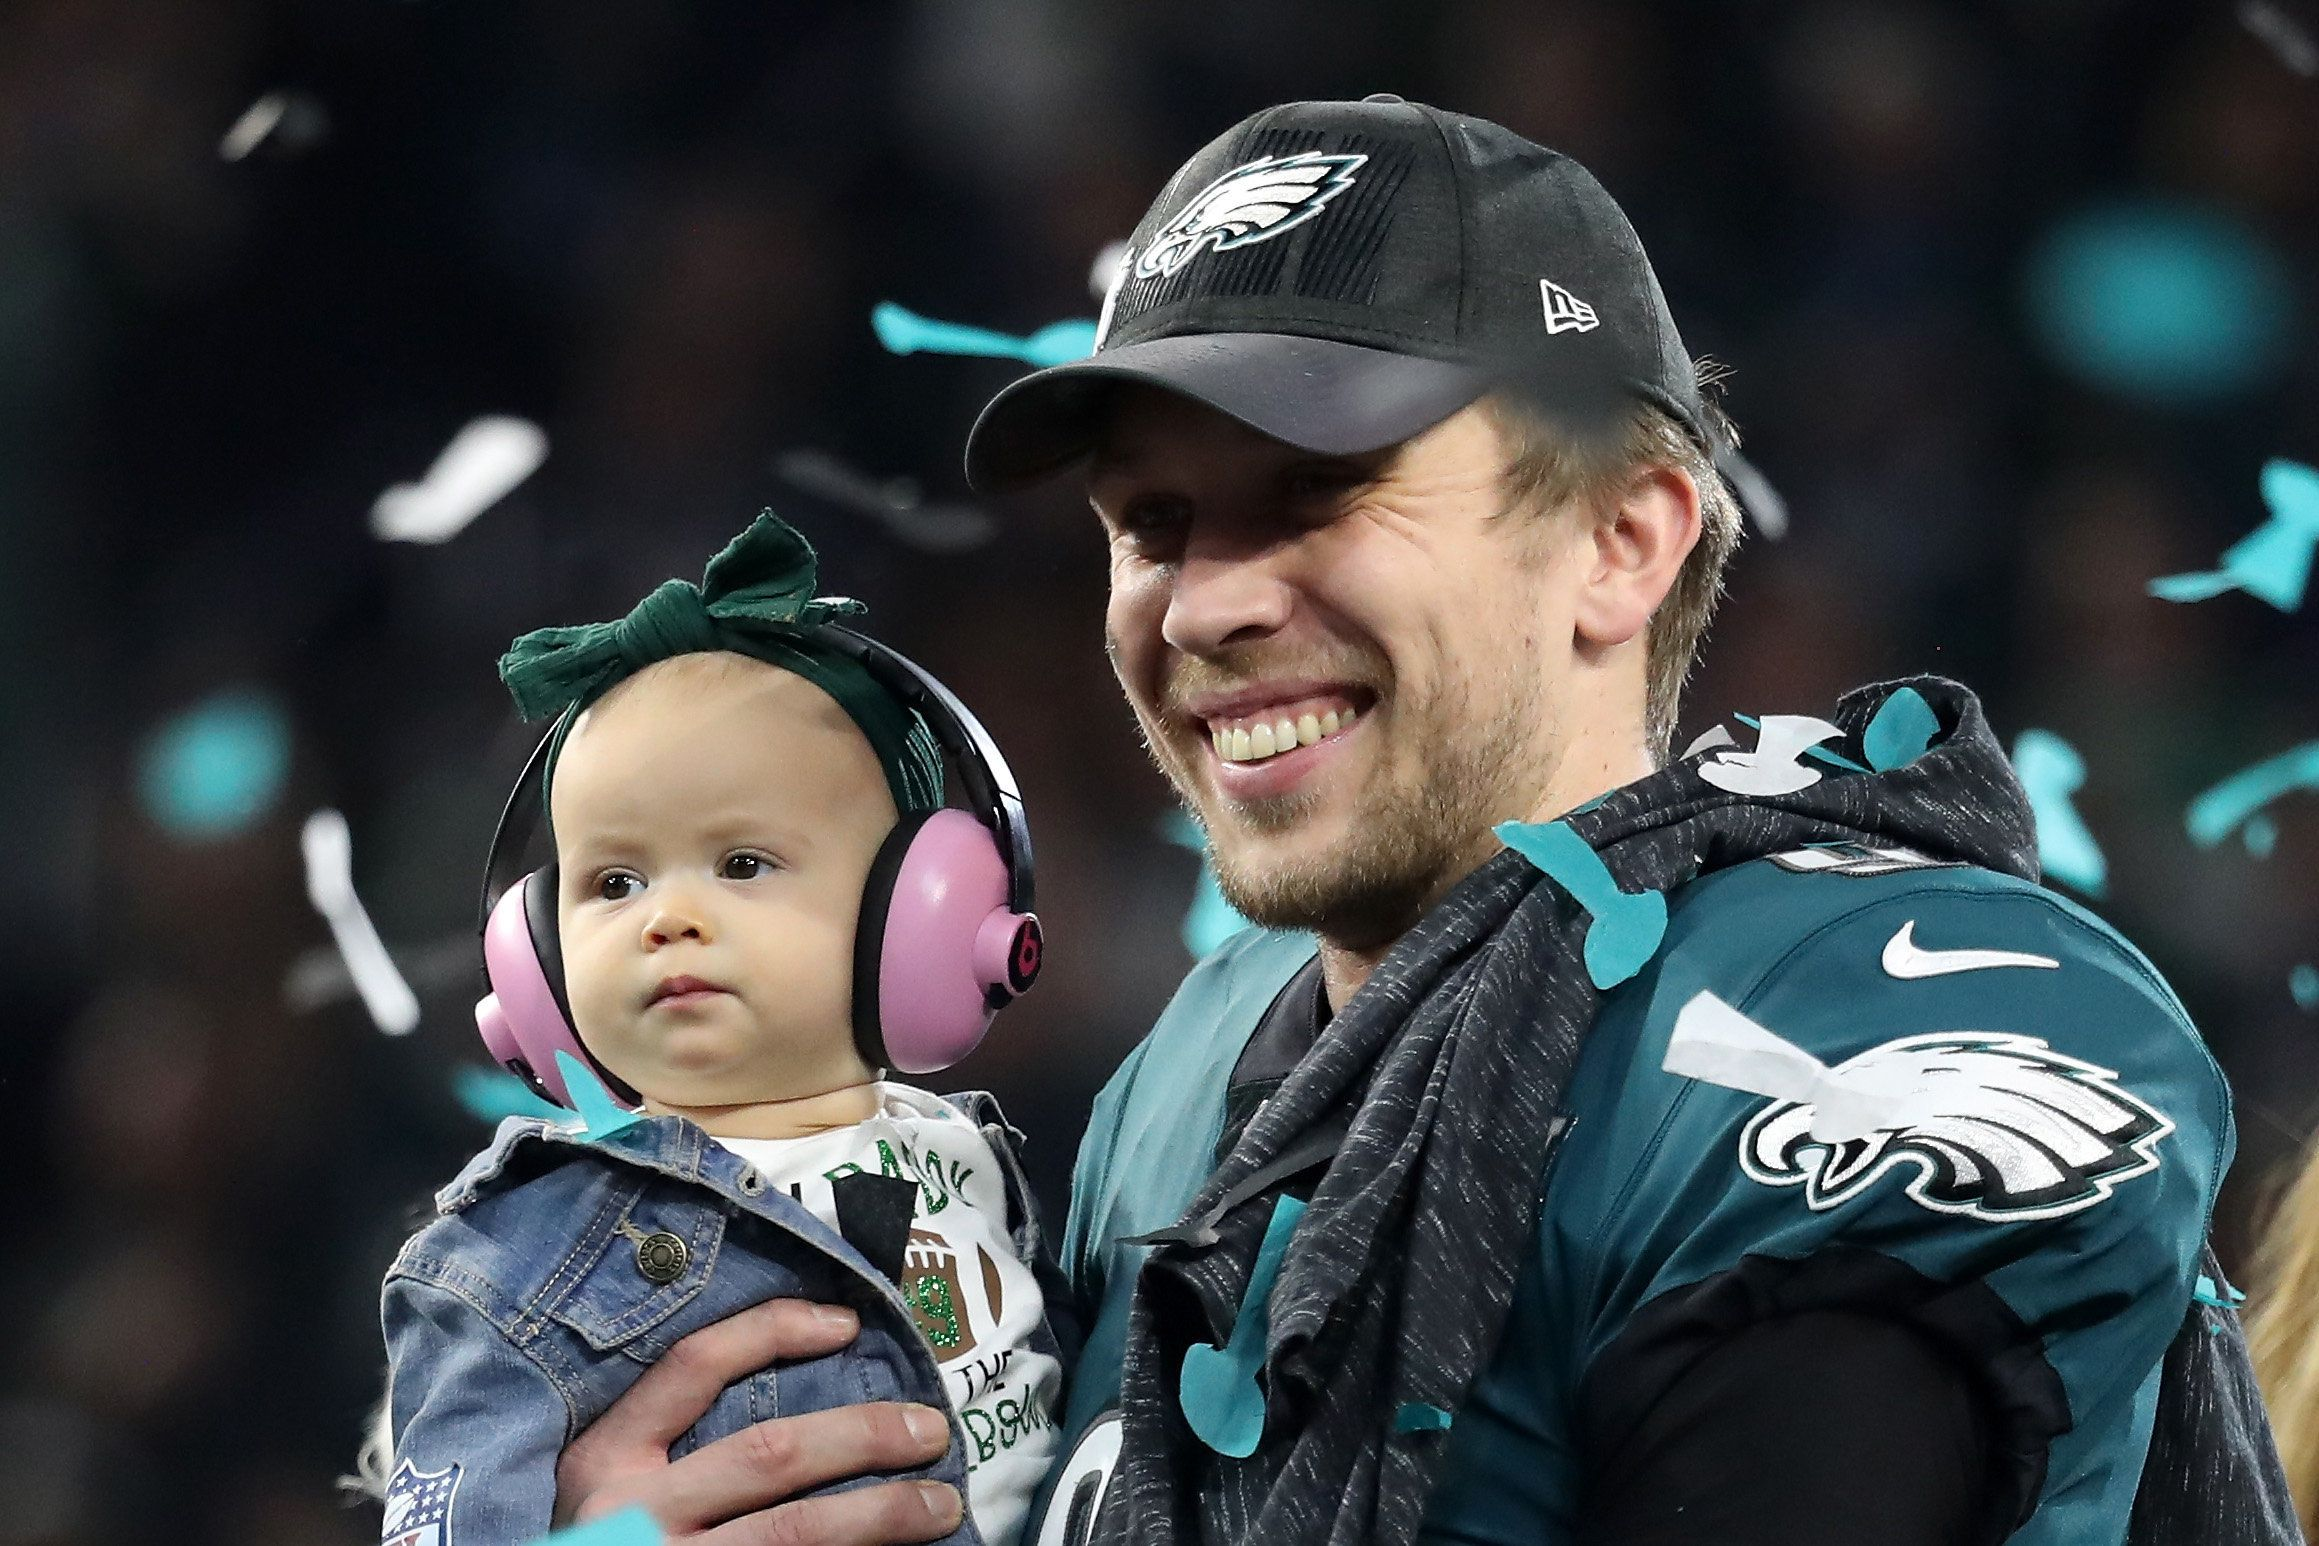 MINNEAPOLIS, MN - FEBRUARY 04:  Nick Foles #9 of the Philadelphia Eagles celebrates with his daughter Lily Foles after his 41-33 victory over the New England Patriots in Super Bowl LII at U.S. Bank Stadium on February 4, 2018 in Minneapolis, Minnesota. The Philadelphia Eagles defeated the New England Patriots 41-33.  (Photo by Rob Carr/Getty Images)